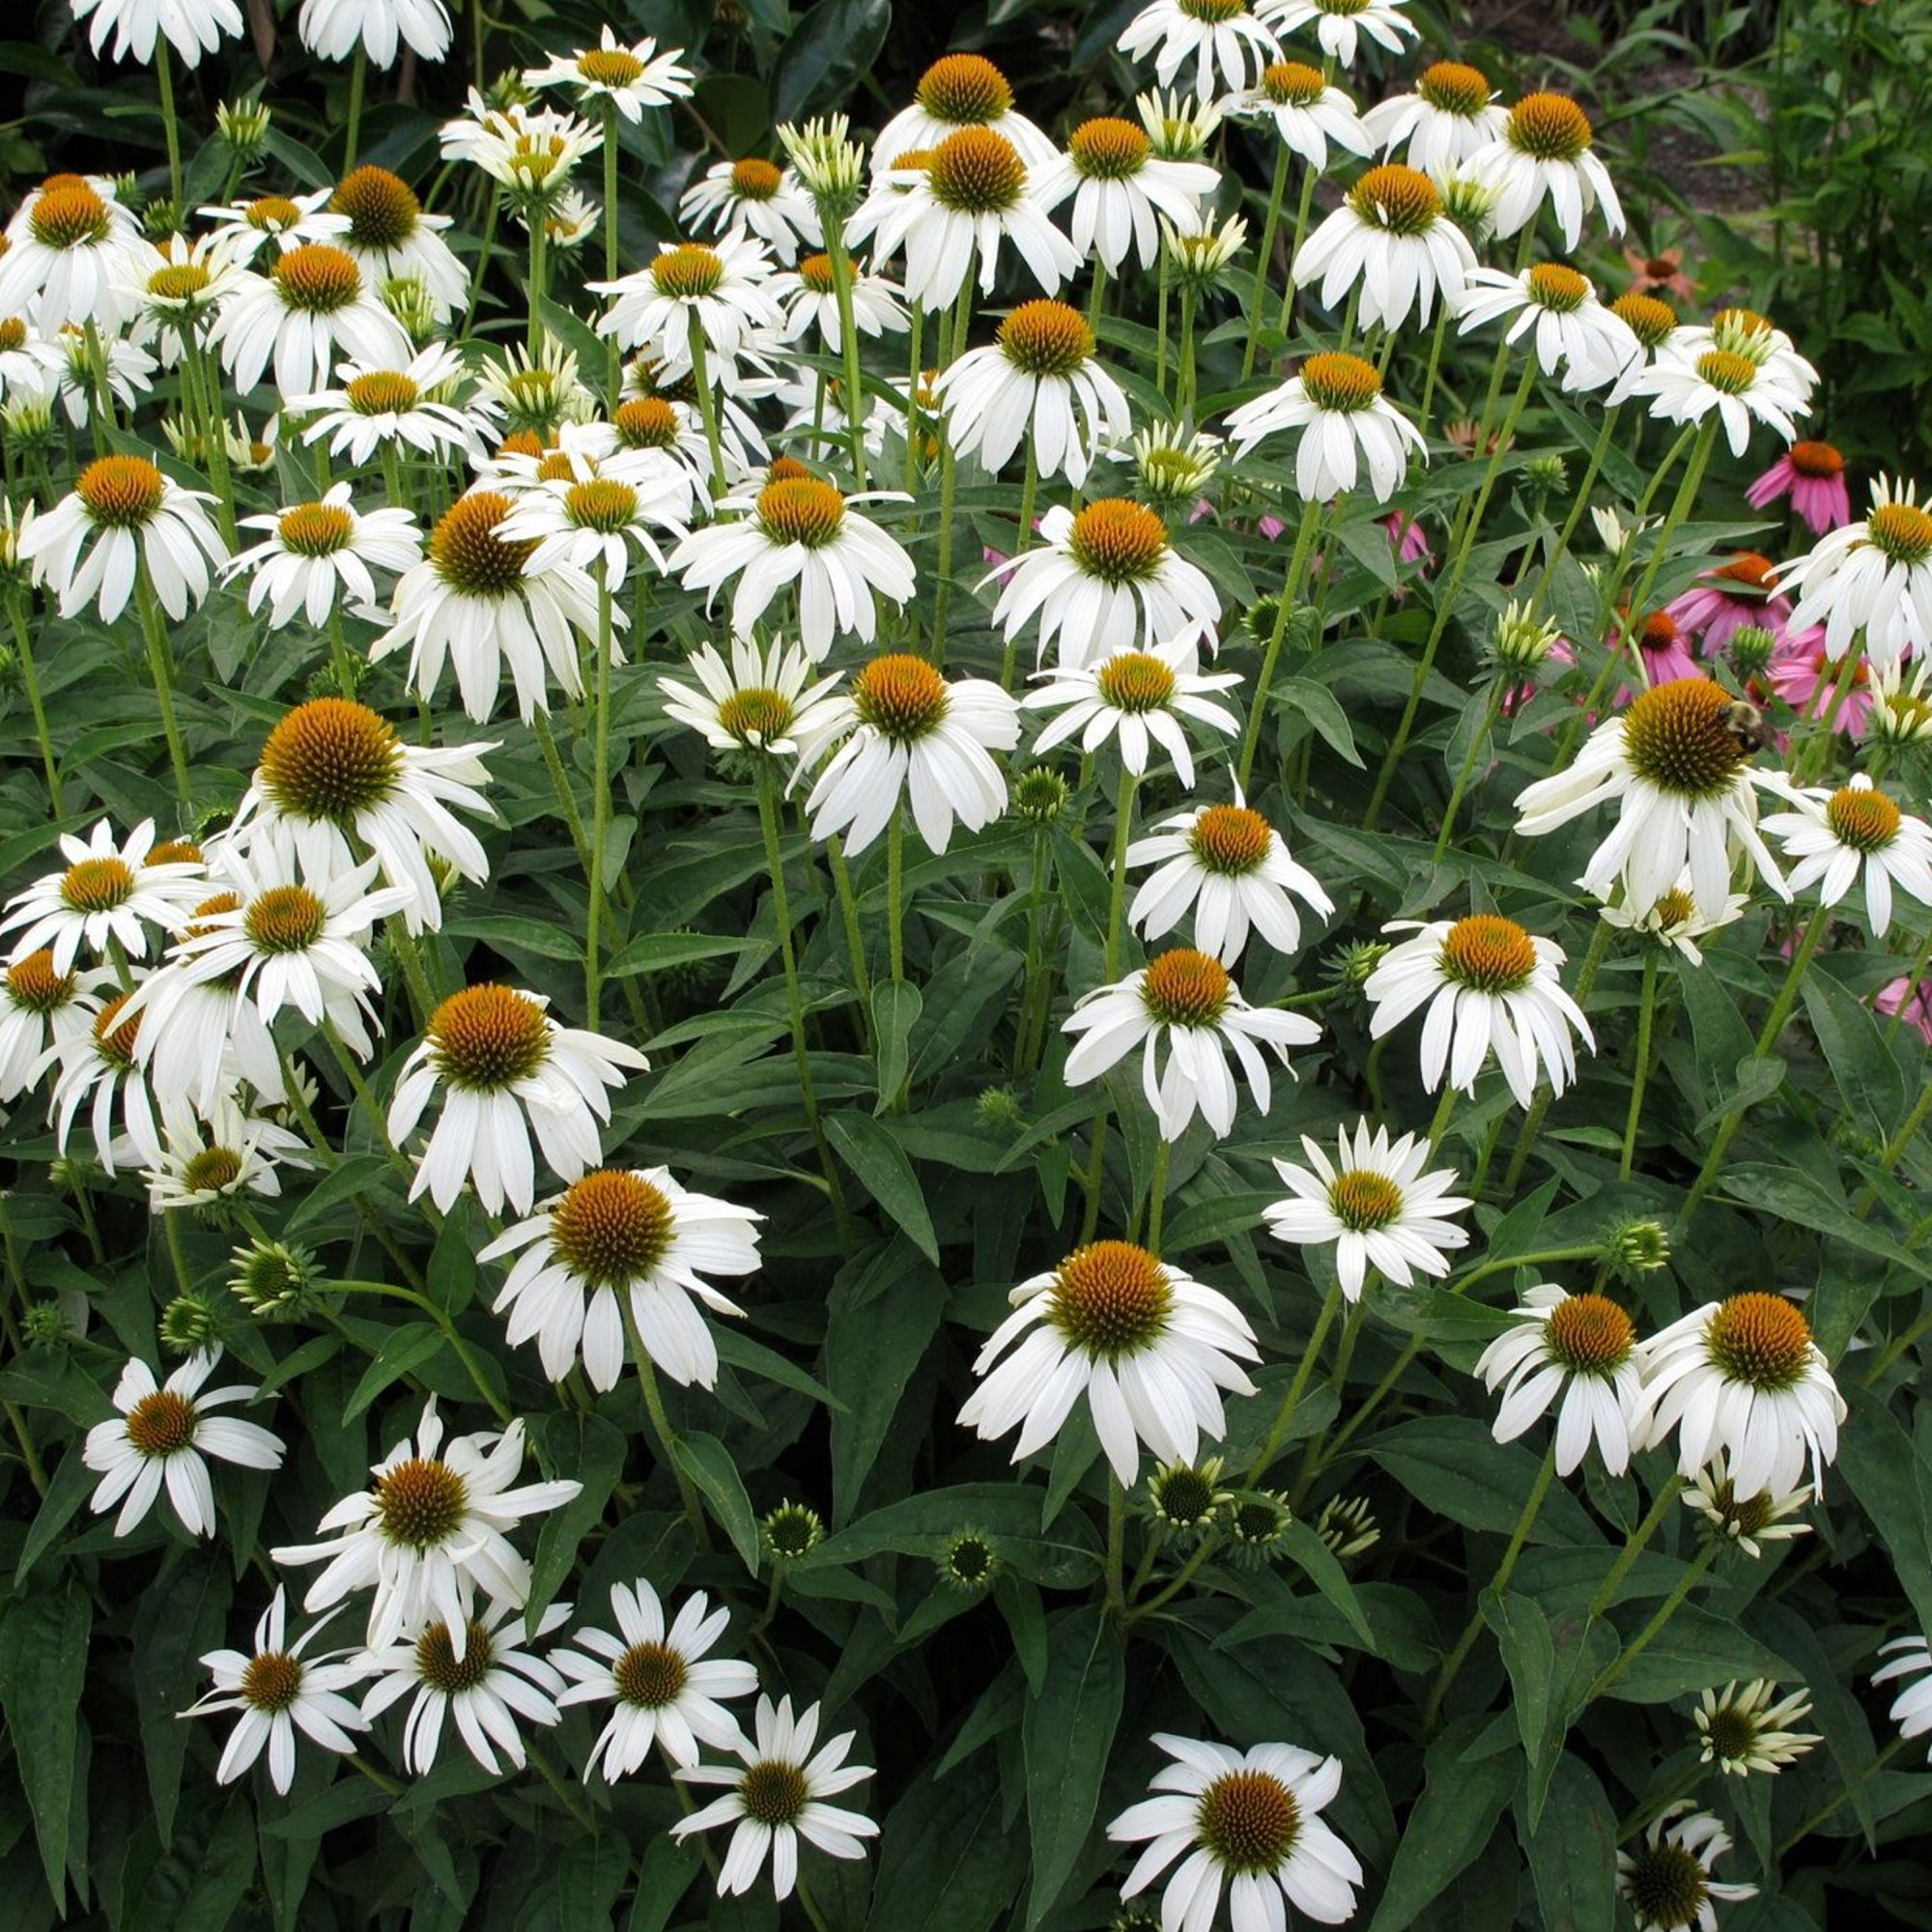 Crazy White Enchinacea